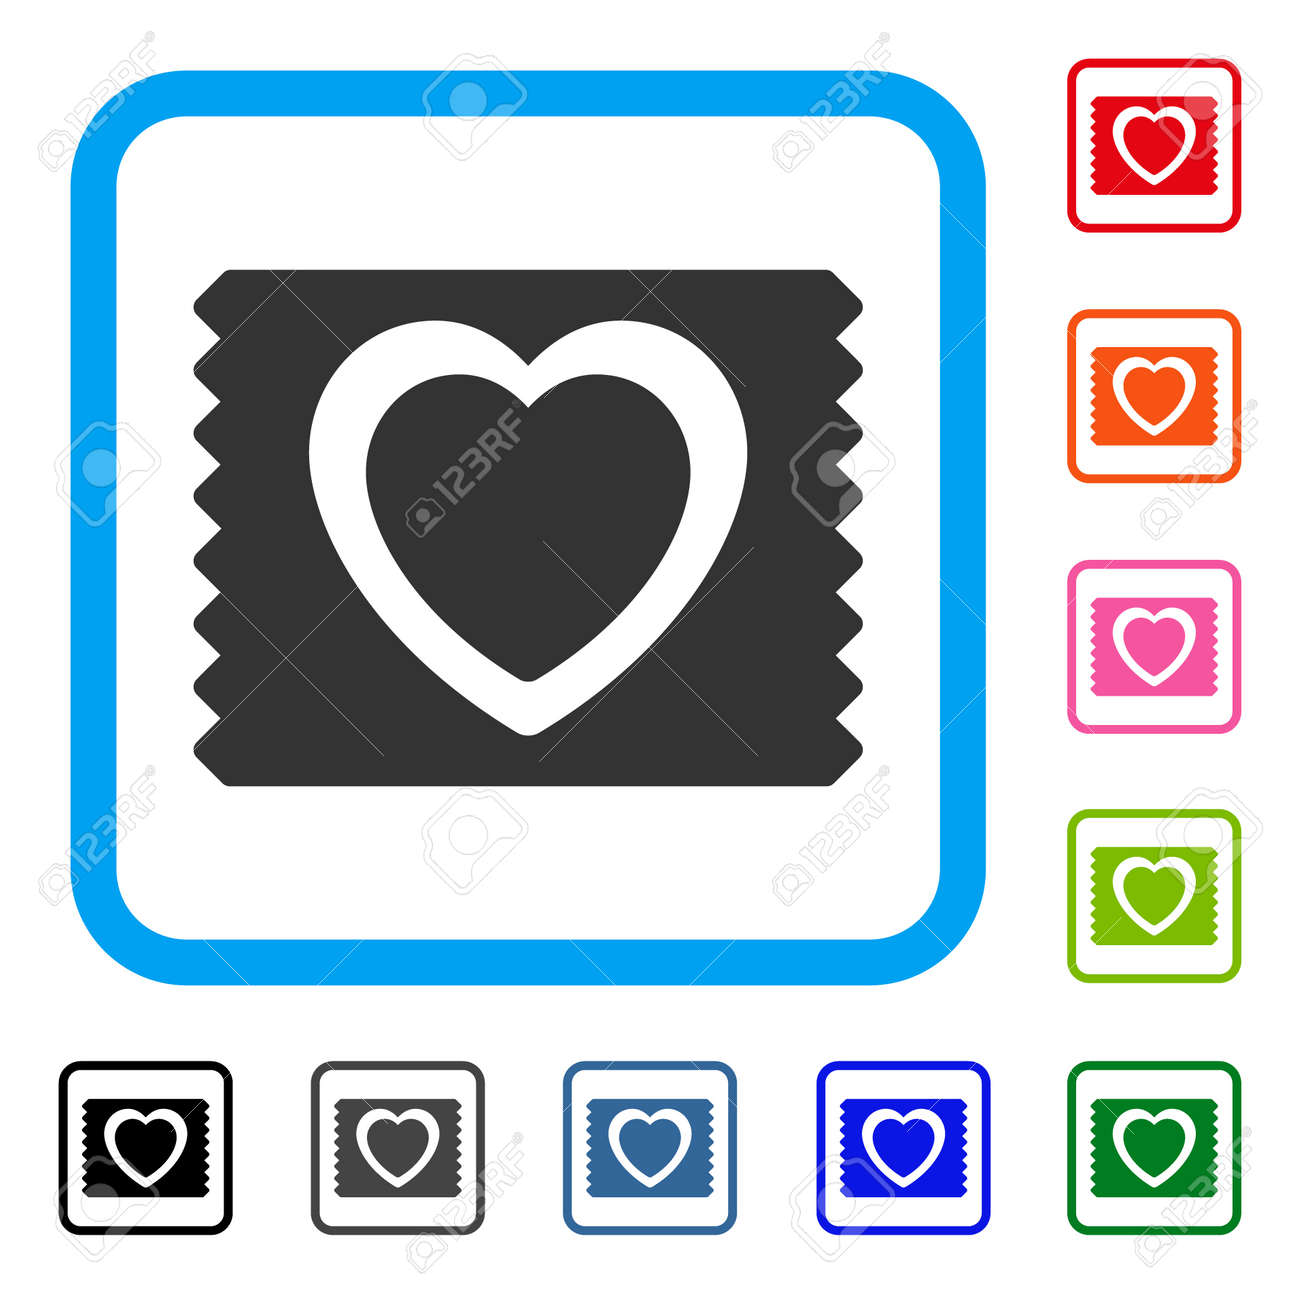 Heart Condom Pack Icon Flat Grey Pictogram Symbol In A Light